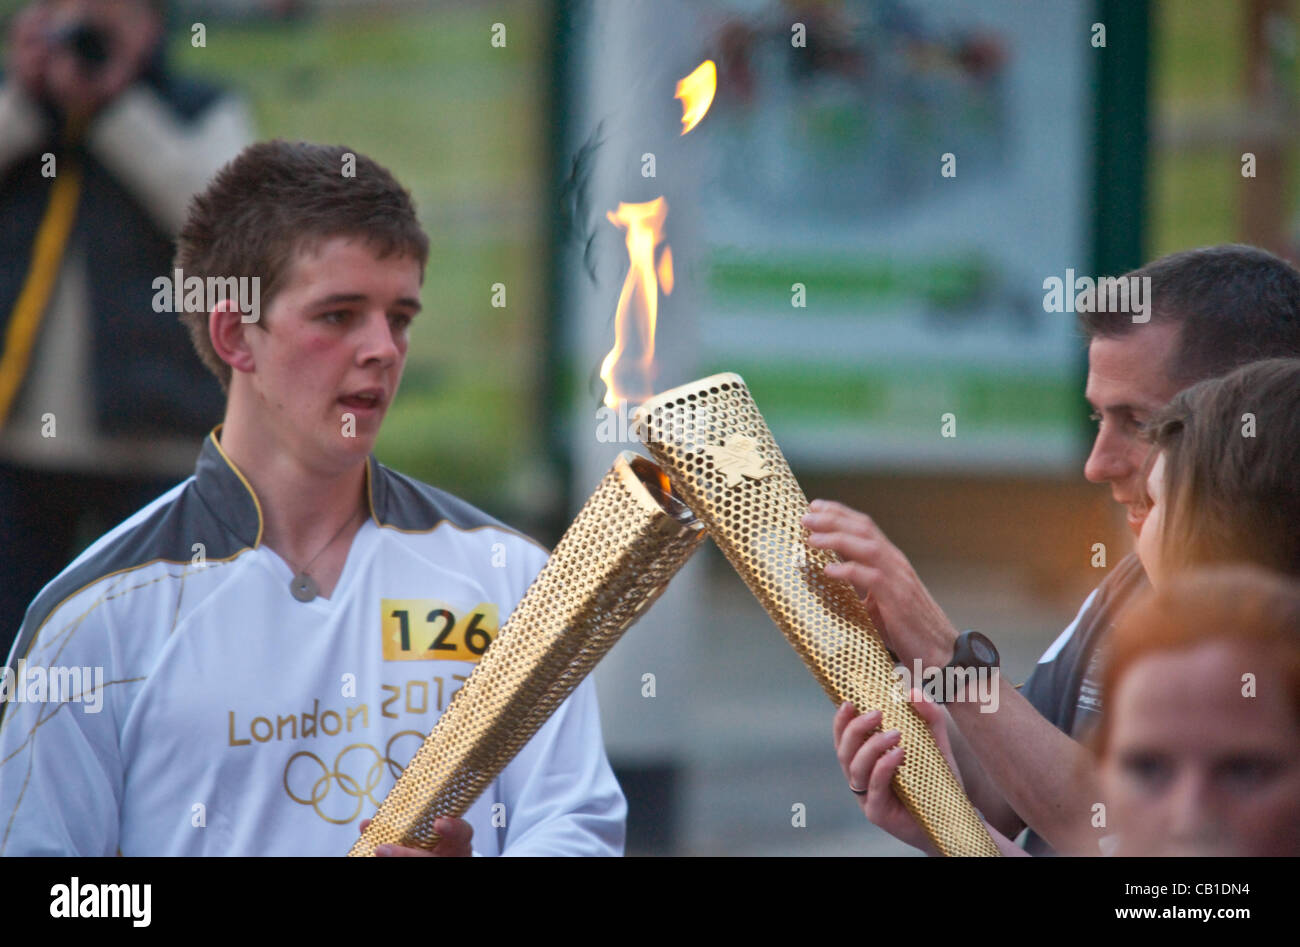 The Olympic Torch relay hands over from one runner to another, with the torch lit from one to another at the handover - Stock Image